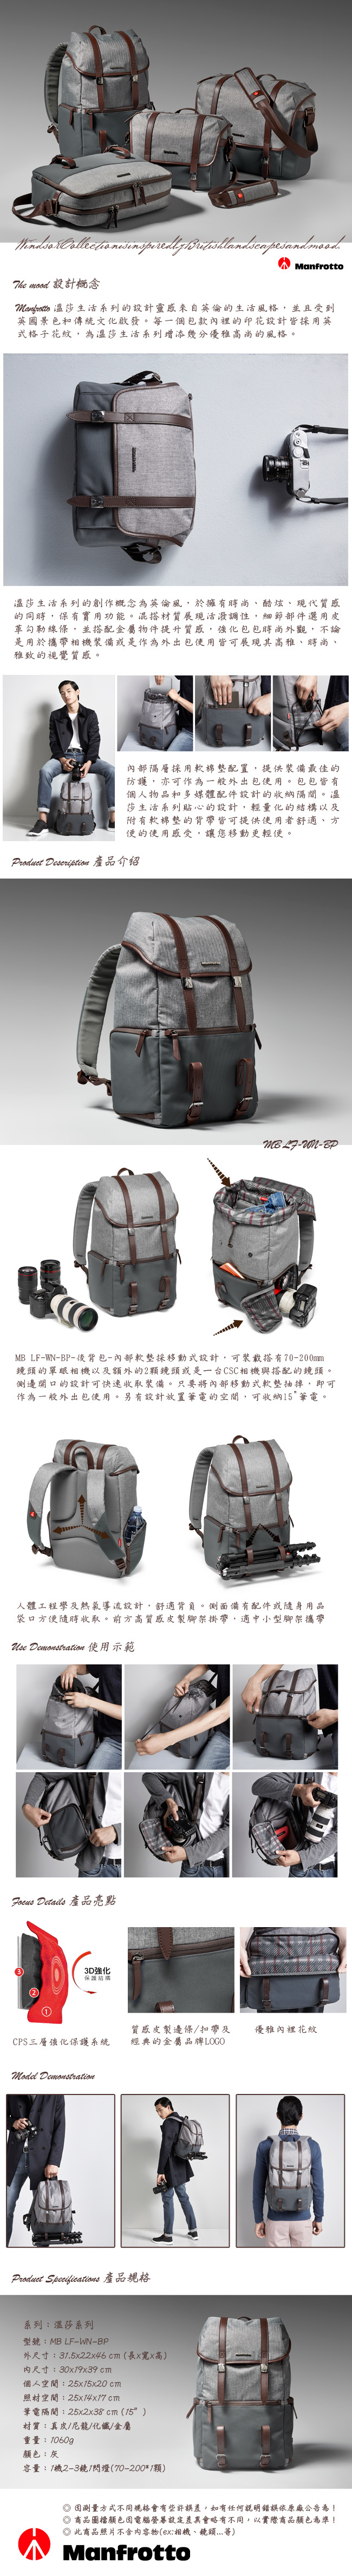 Manfrotto 溫莎生活系列中型郵差包 M Lifestyle Windsor Messenger M